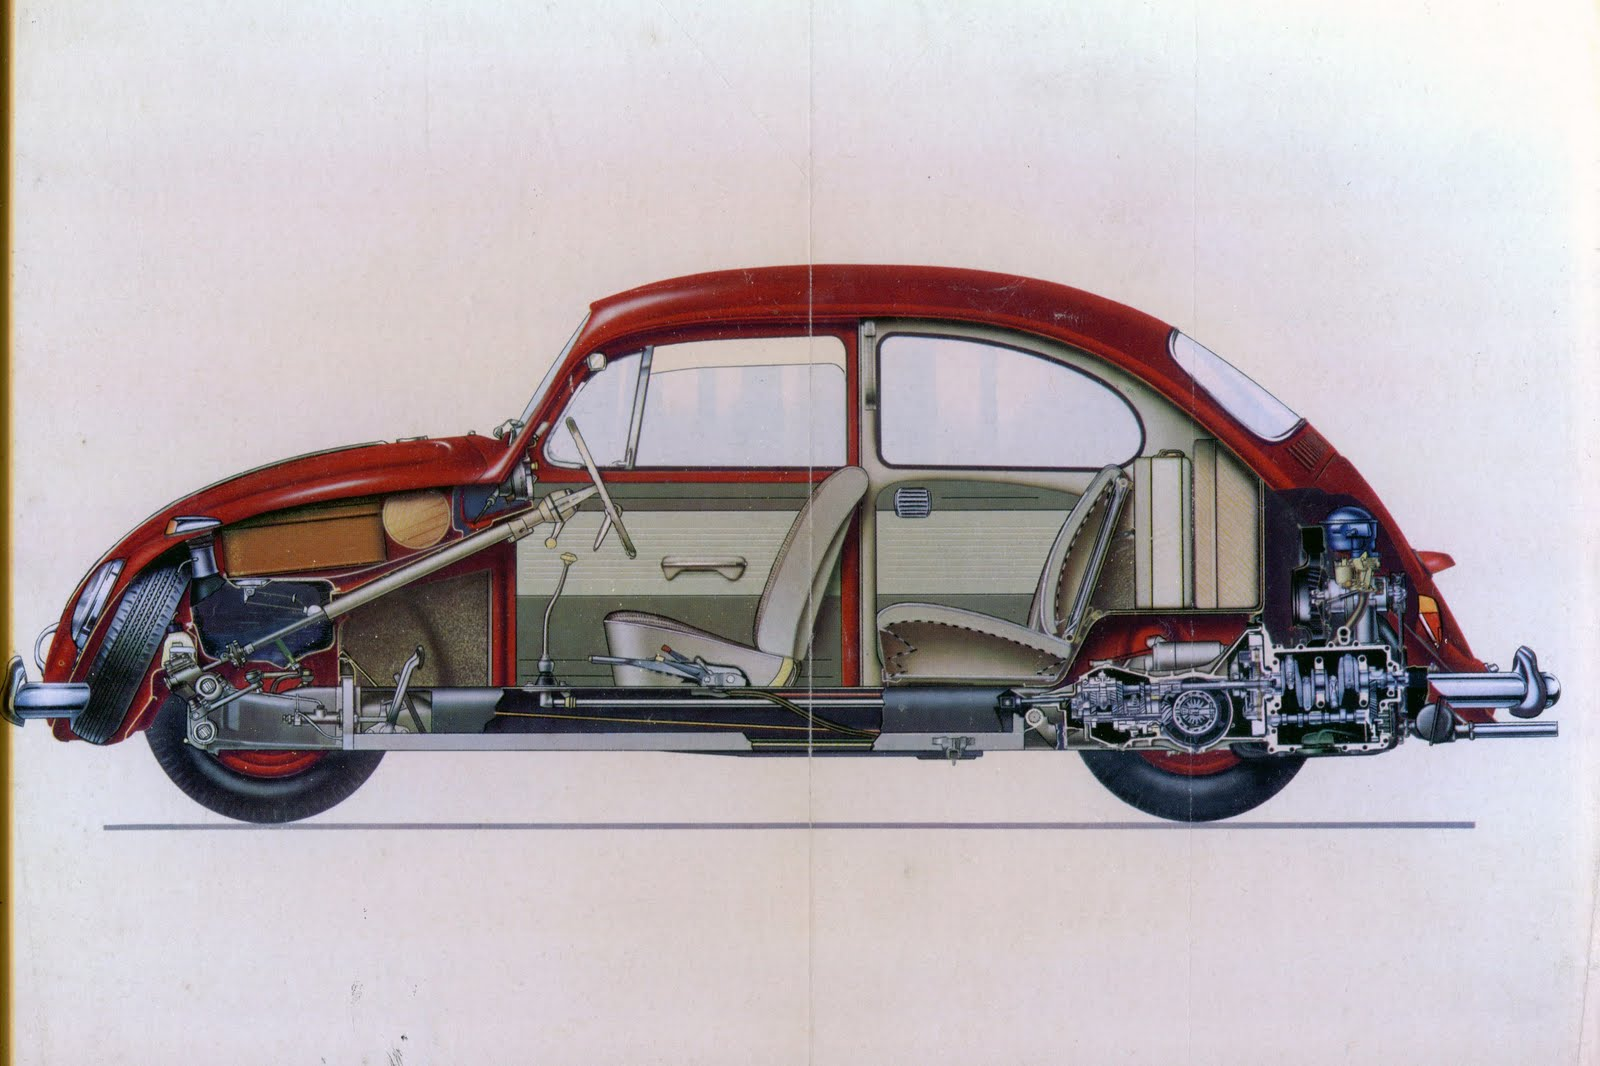 1969 Vw Bug Suspension as well Viewtopic likewise ProductDetails in addition Elec also 1962 Beetle Fuse Box. on classic vw beetle diagrams